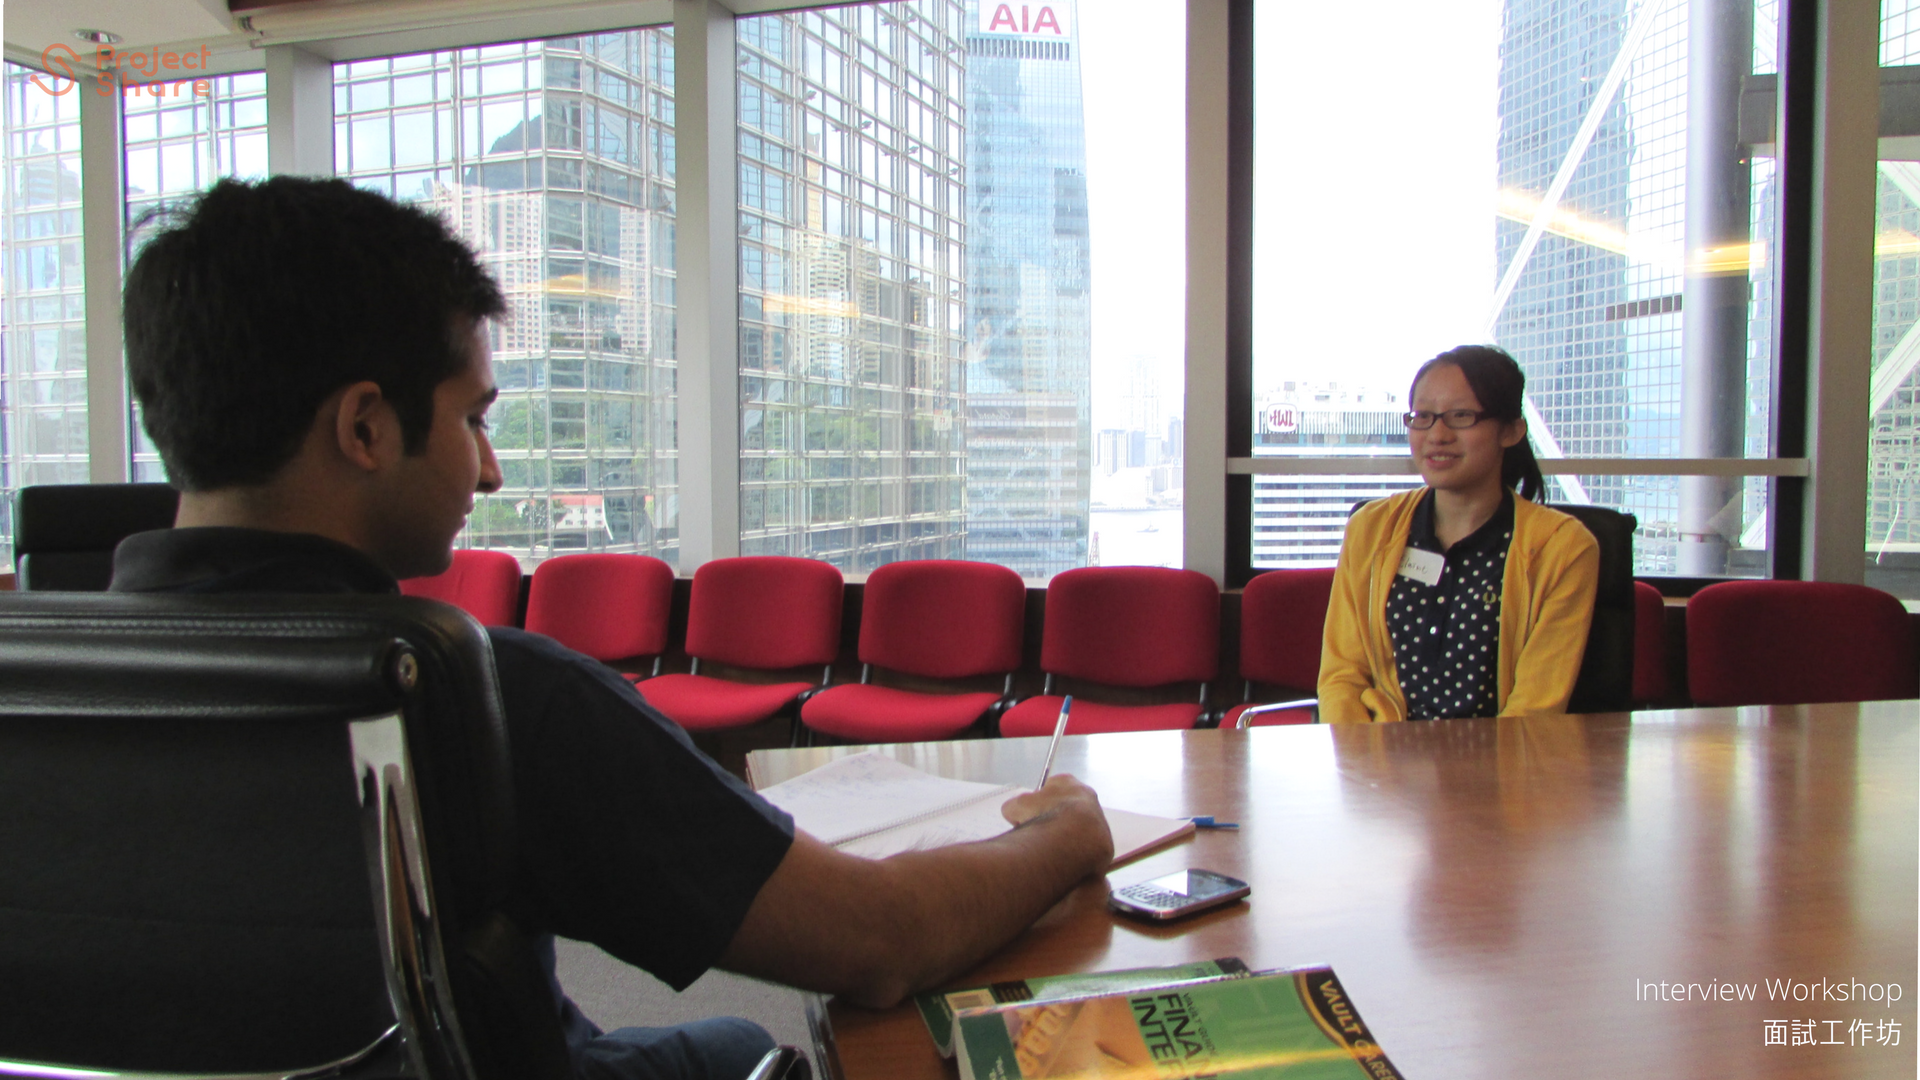 Student doing mock interview with student participant.